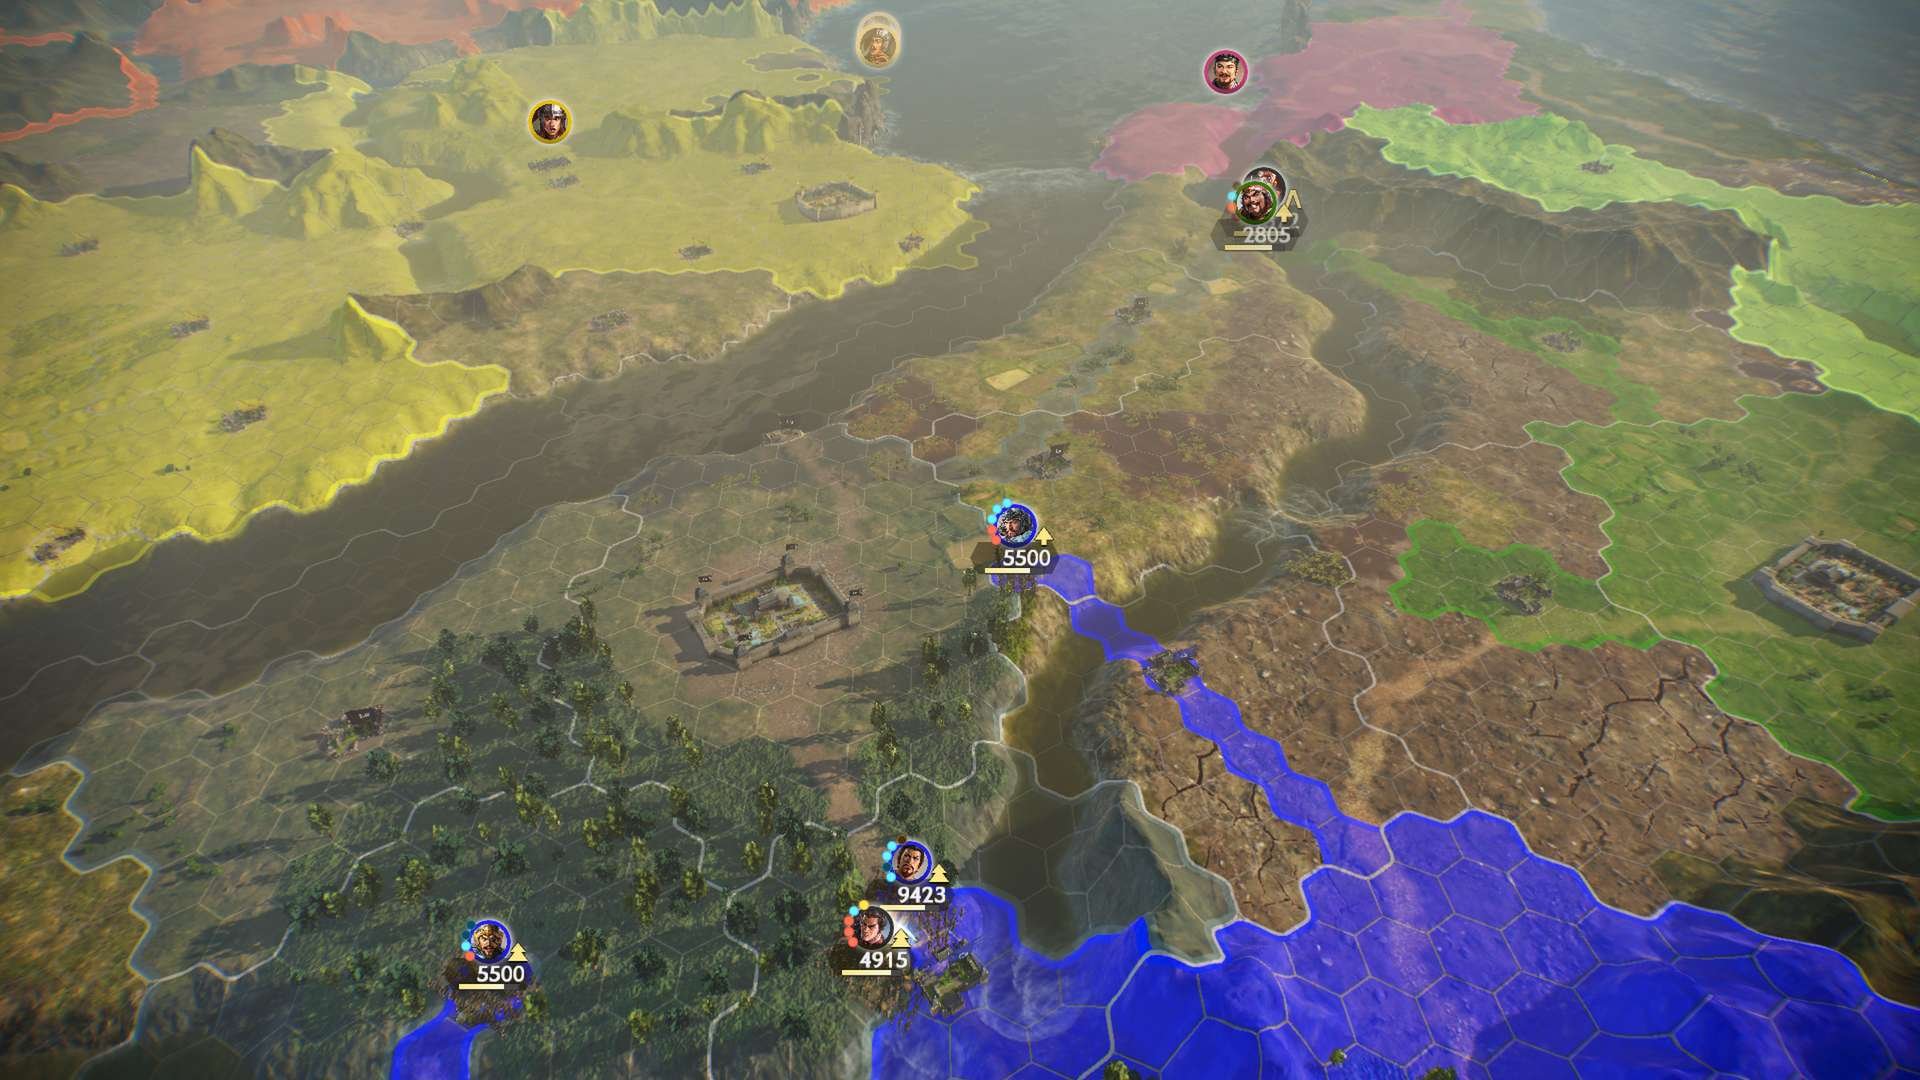 4X, historical, Koei Tecmo Games, Rating 7/10, Romance of the Three Kingdoms XIV, Romance of the Three Kingdoms XIV Review, RPG, simulation, strategy, turn-based